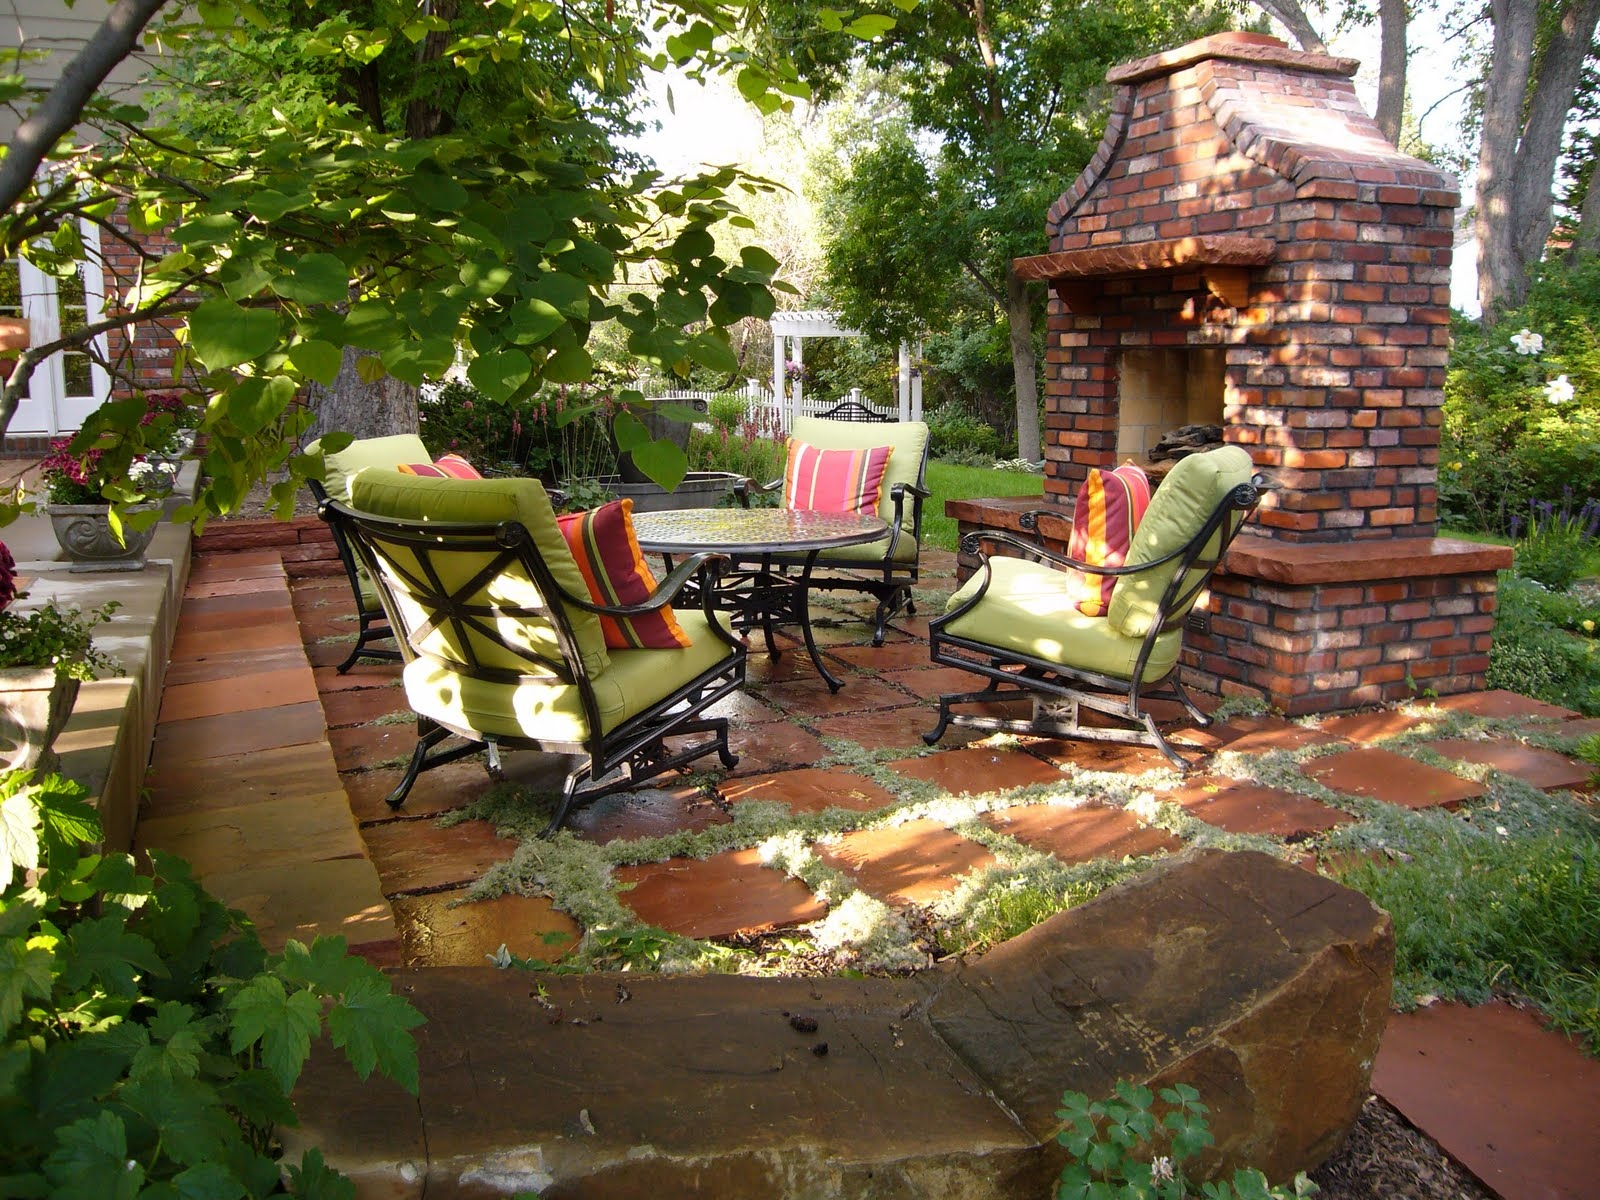 30 Rustic Outdoor Design For Your Home - The WoW Style on Backyard Exterior Design id=78836